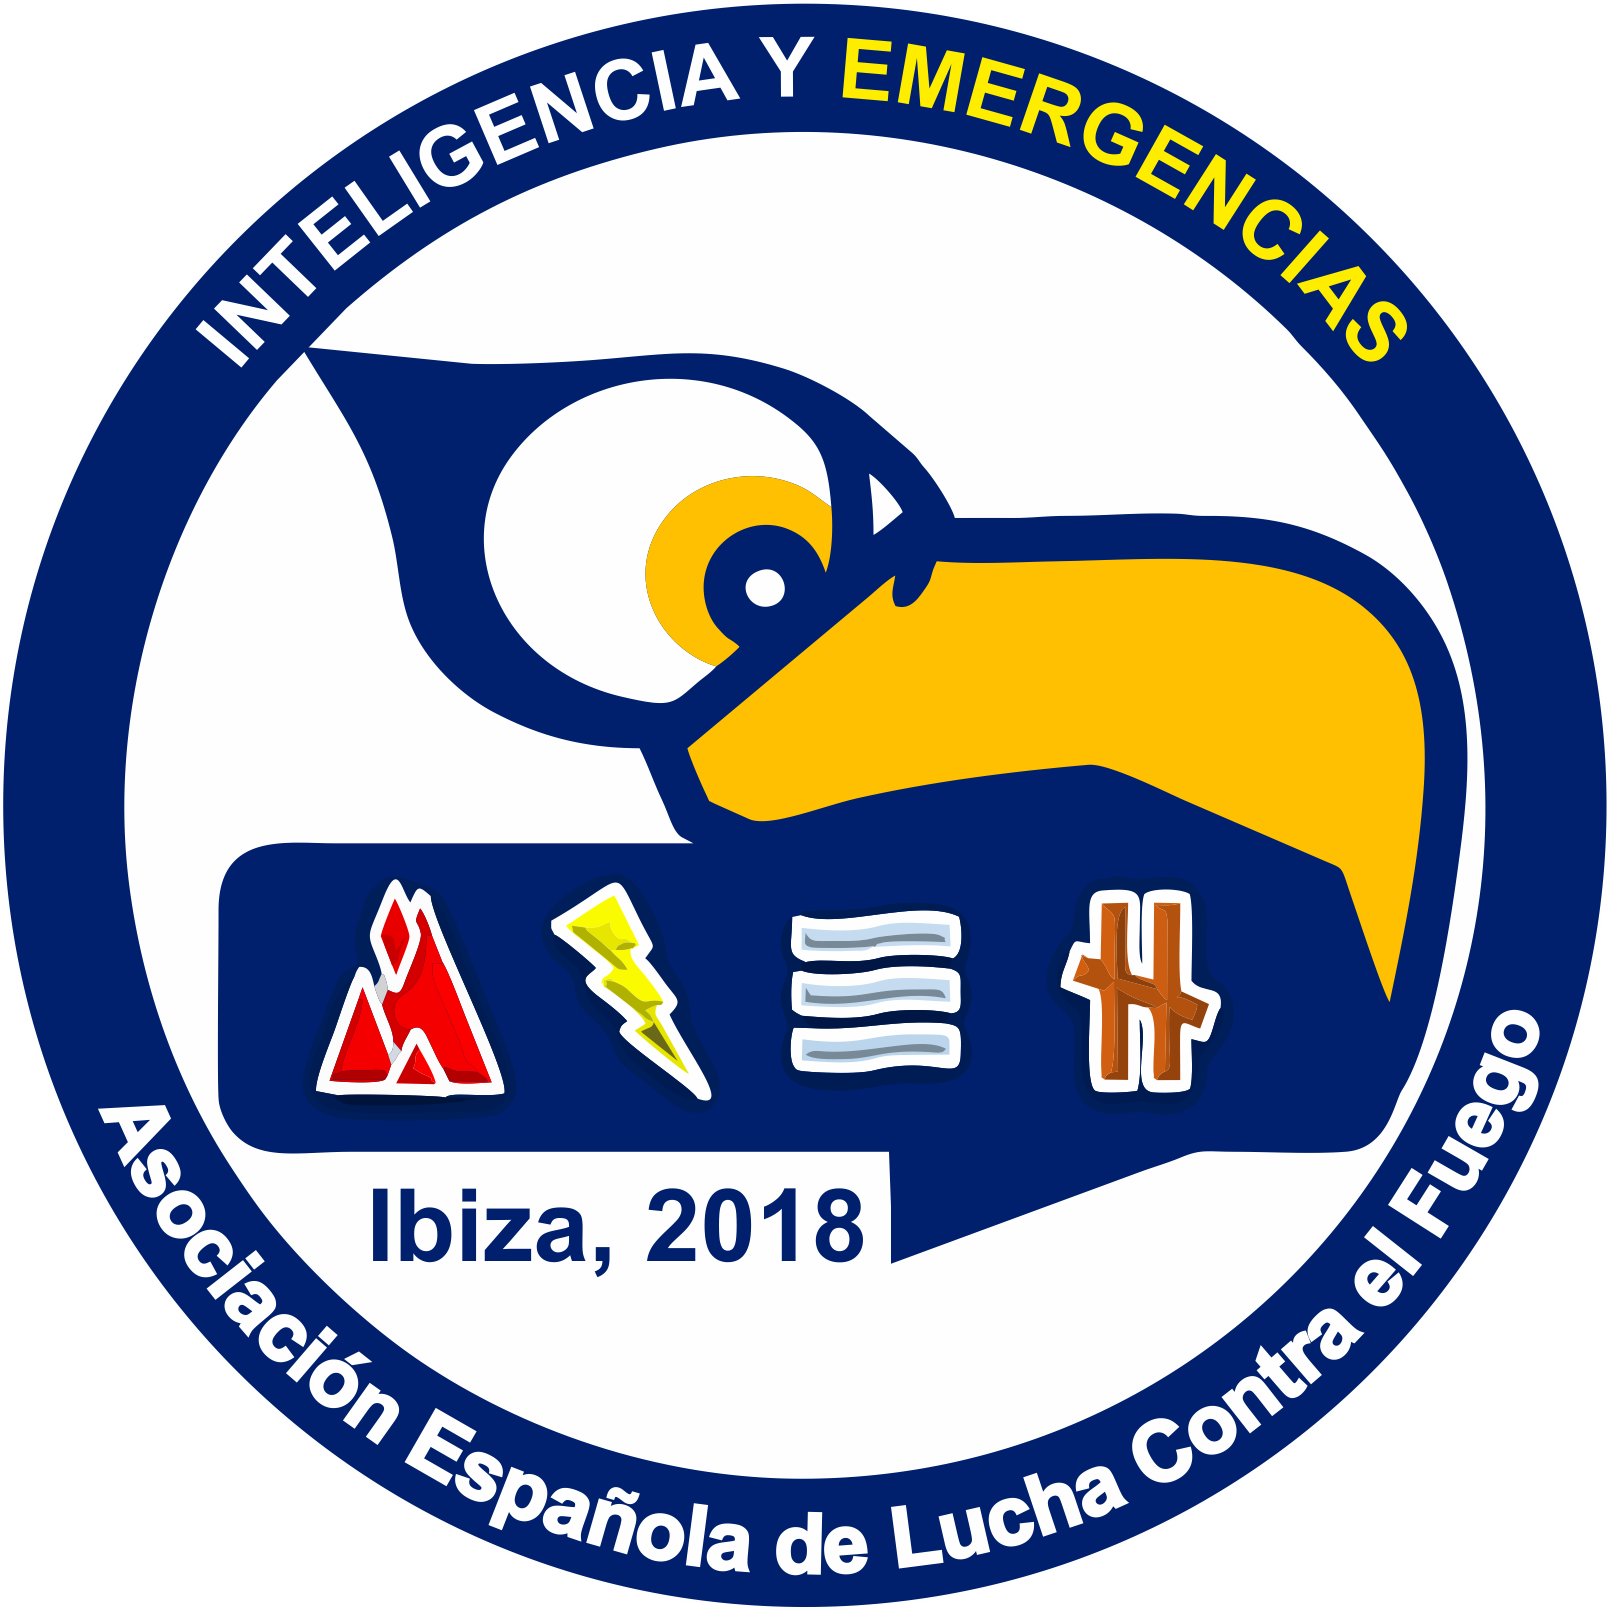 INTELIGENCIA Y EMERGENCIAS IBIZA 2018